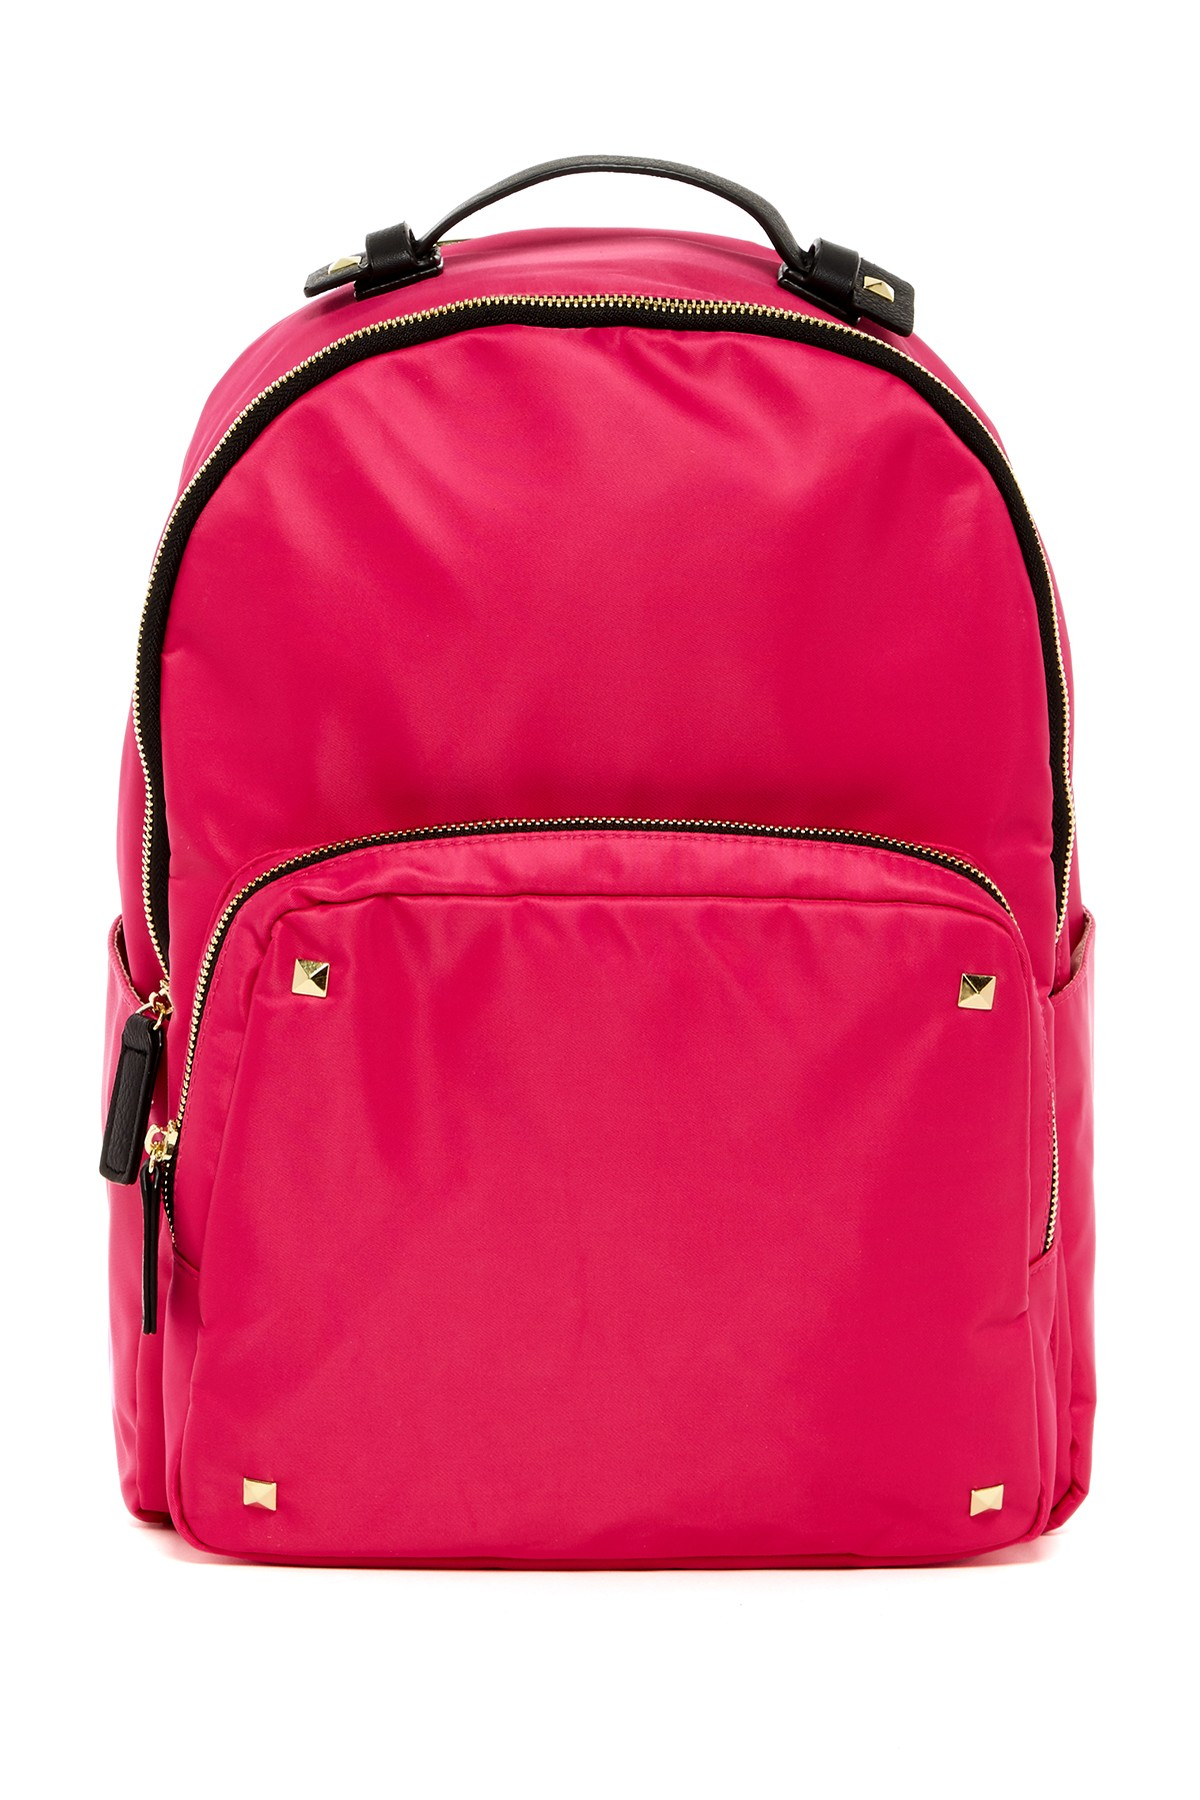 6532b1799a91 Lyst Steven By Steve Madden Wright Nylon Backpack In Pink. Up To 70 Off  Steven By Steve Madden Shoes Nordstrom Rack